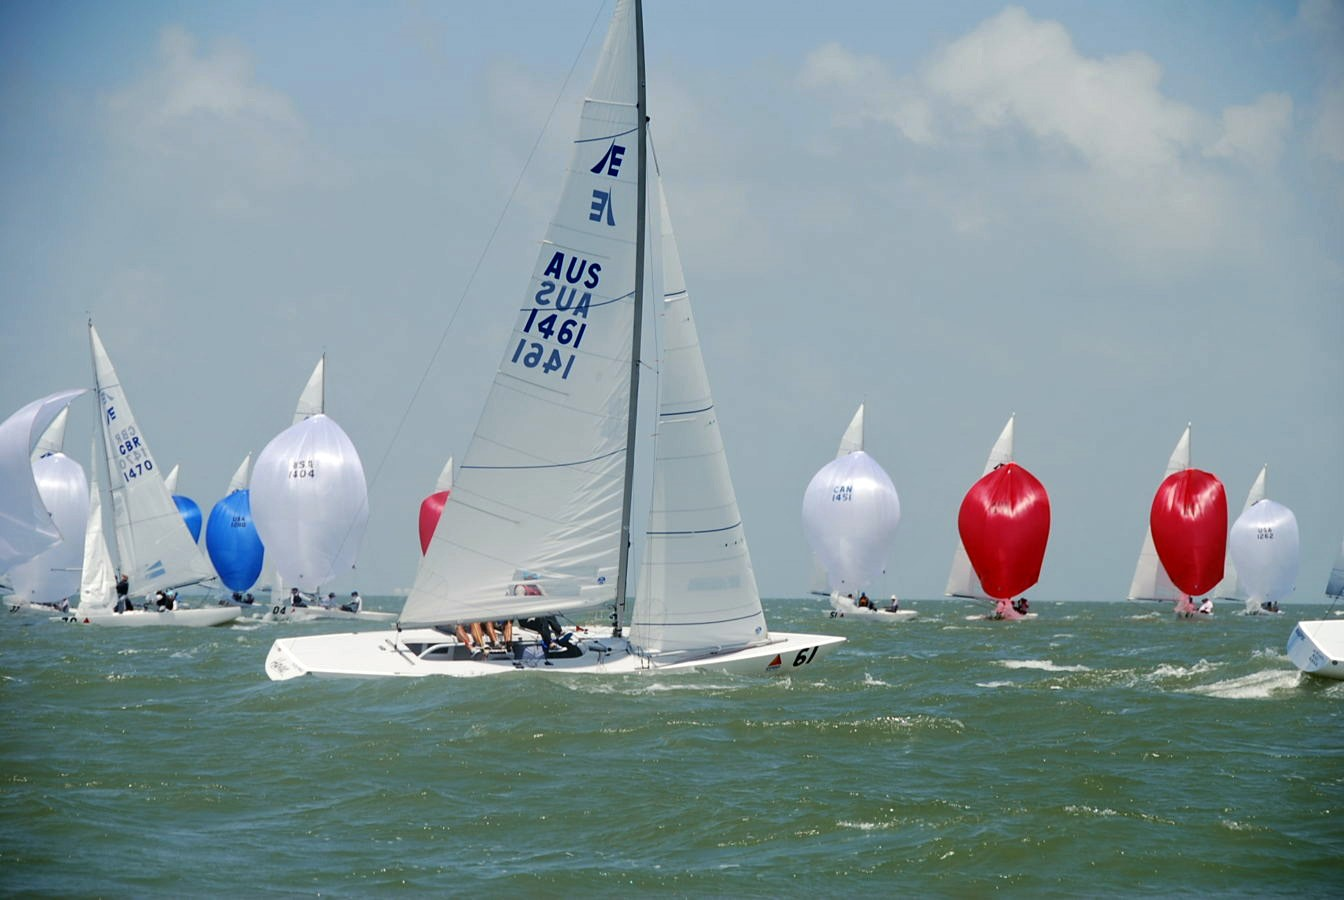 Etchells World Champions Havoc (sail no. 1461)